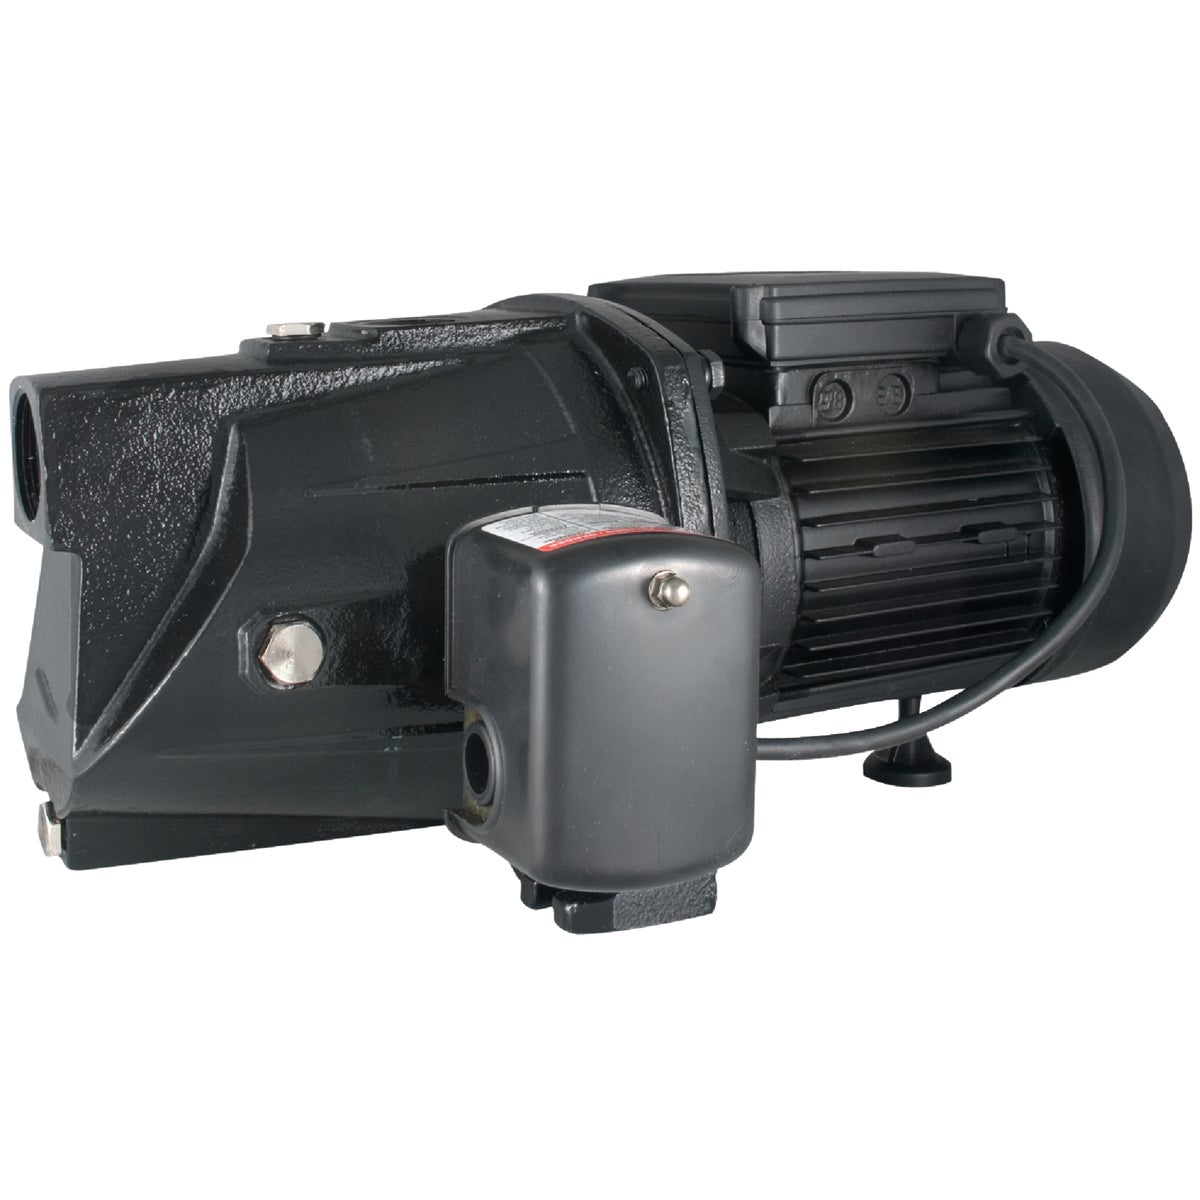 1/2HP SHLW WELL JET PUMP - SJ05S by Star Water Systems